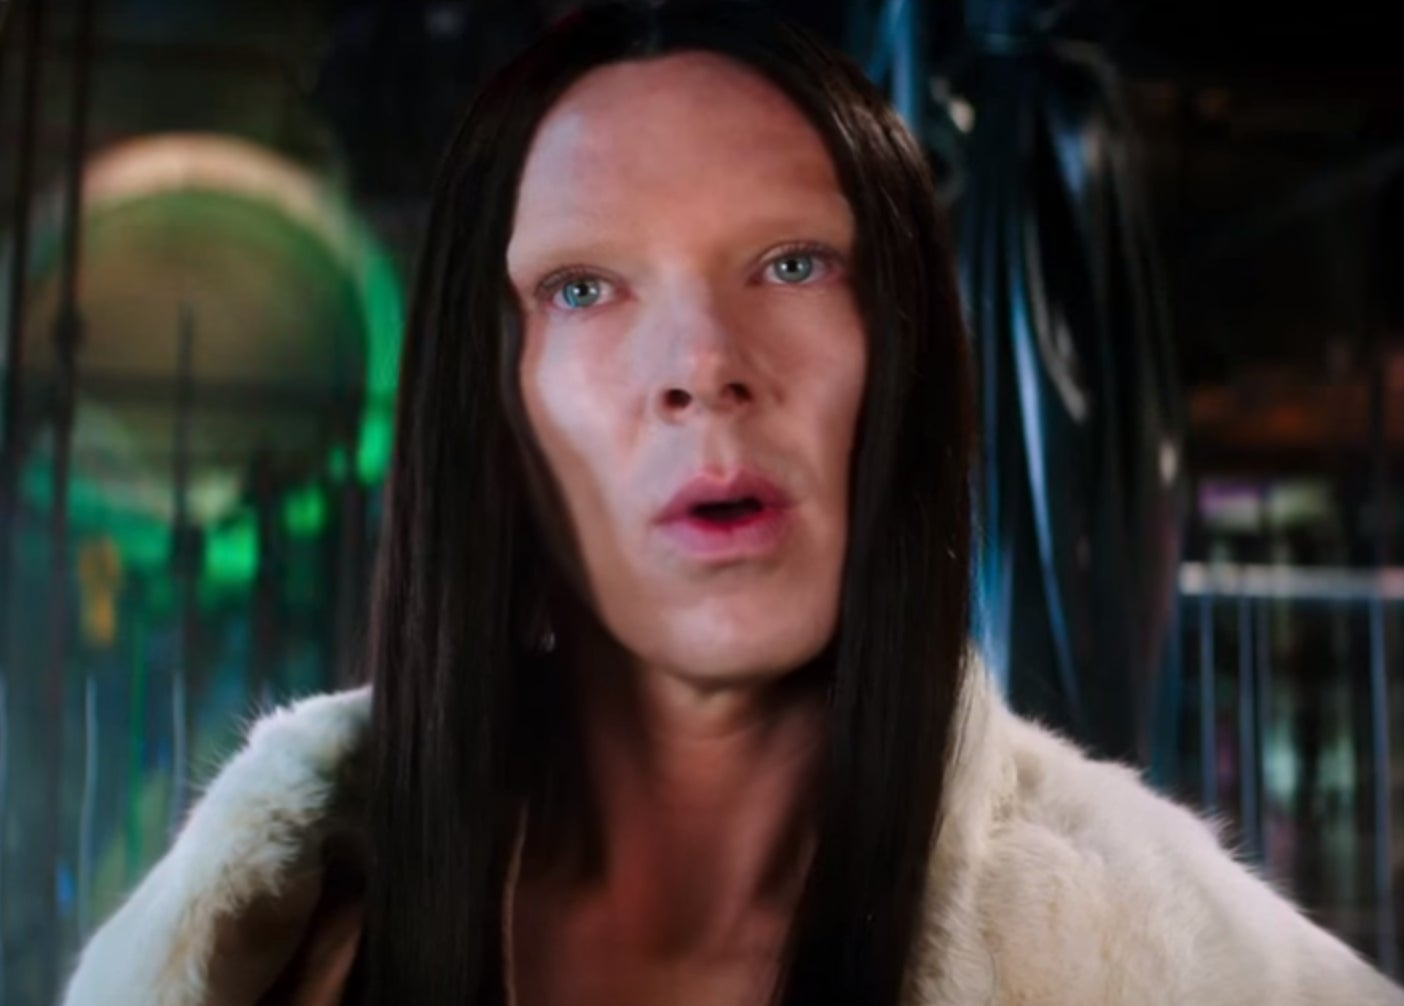 Zoolander 2 trailer benedict cumberbatchs cartoonish transgender character leads to calls for boycott